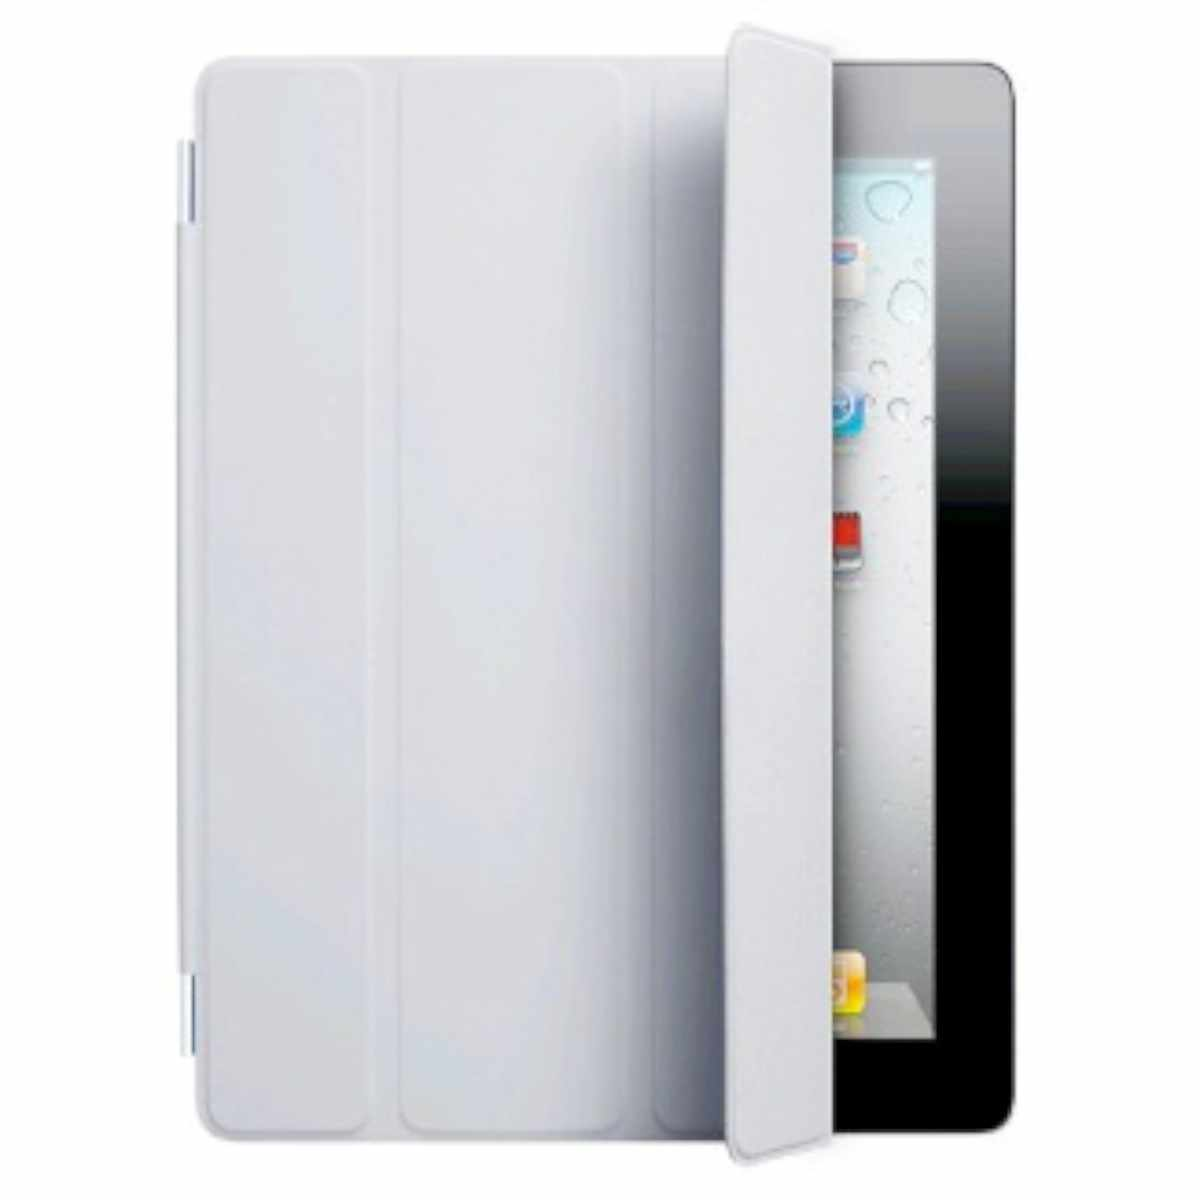 126409915Smart Cover iPad 2 - nieuwe iPad wit